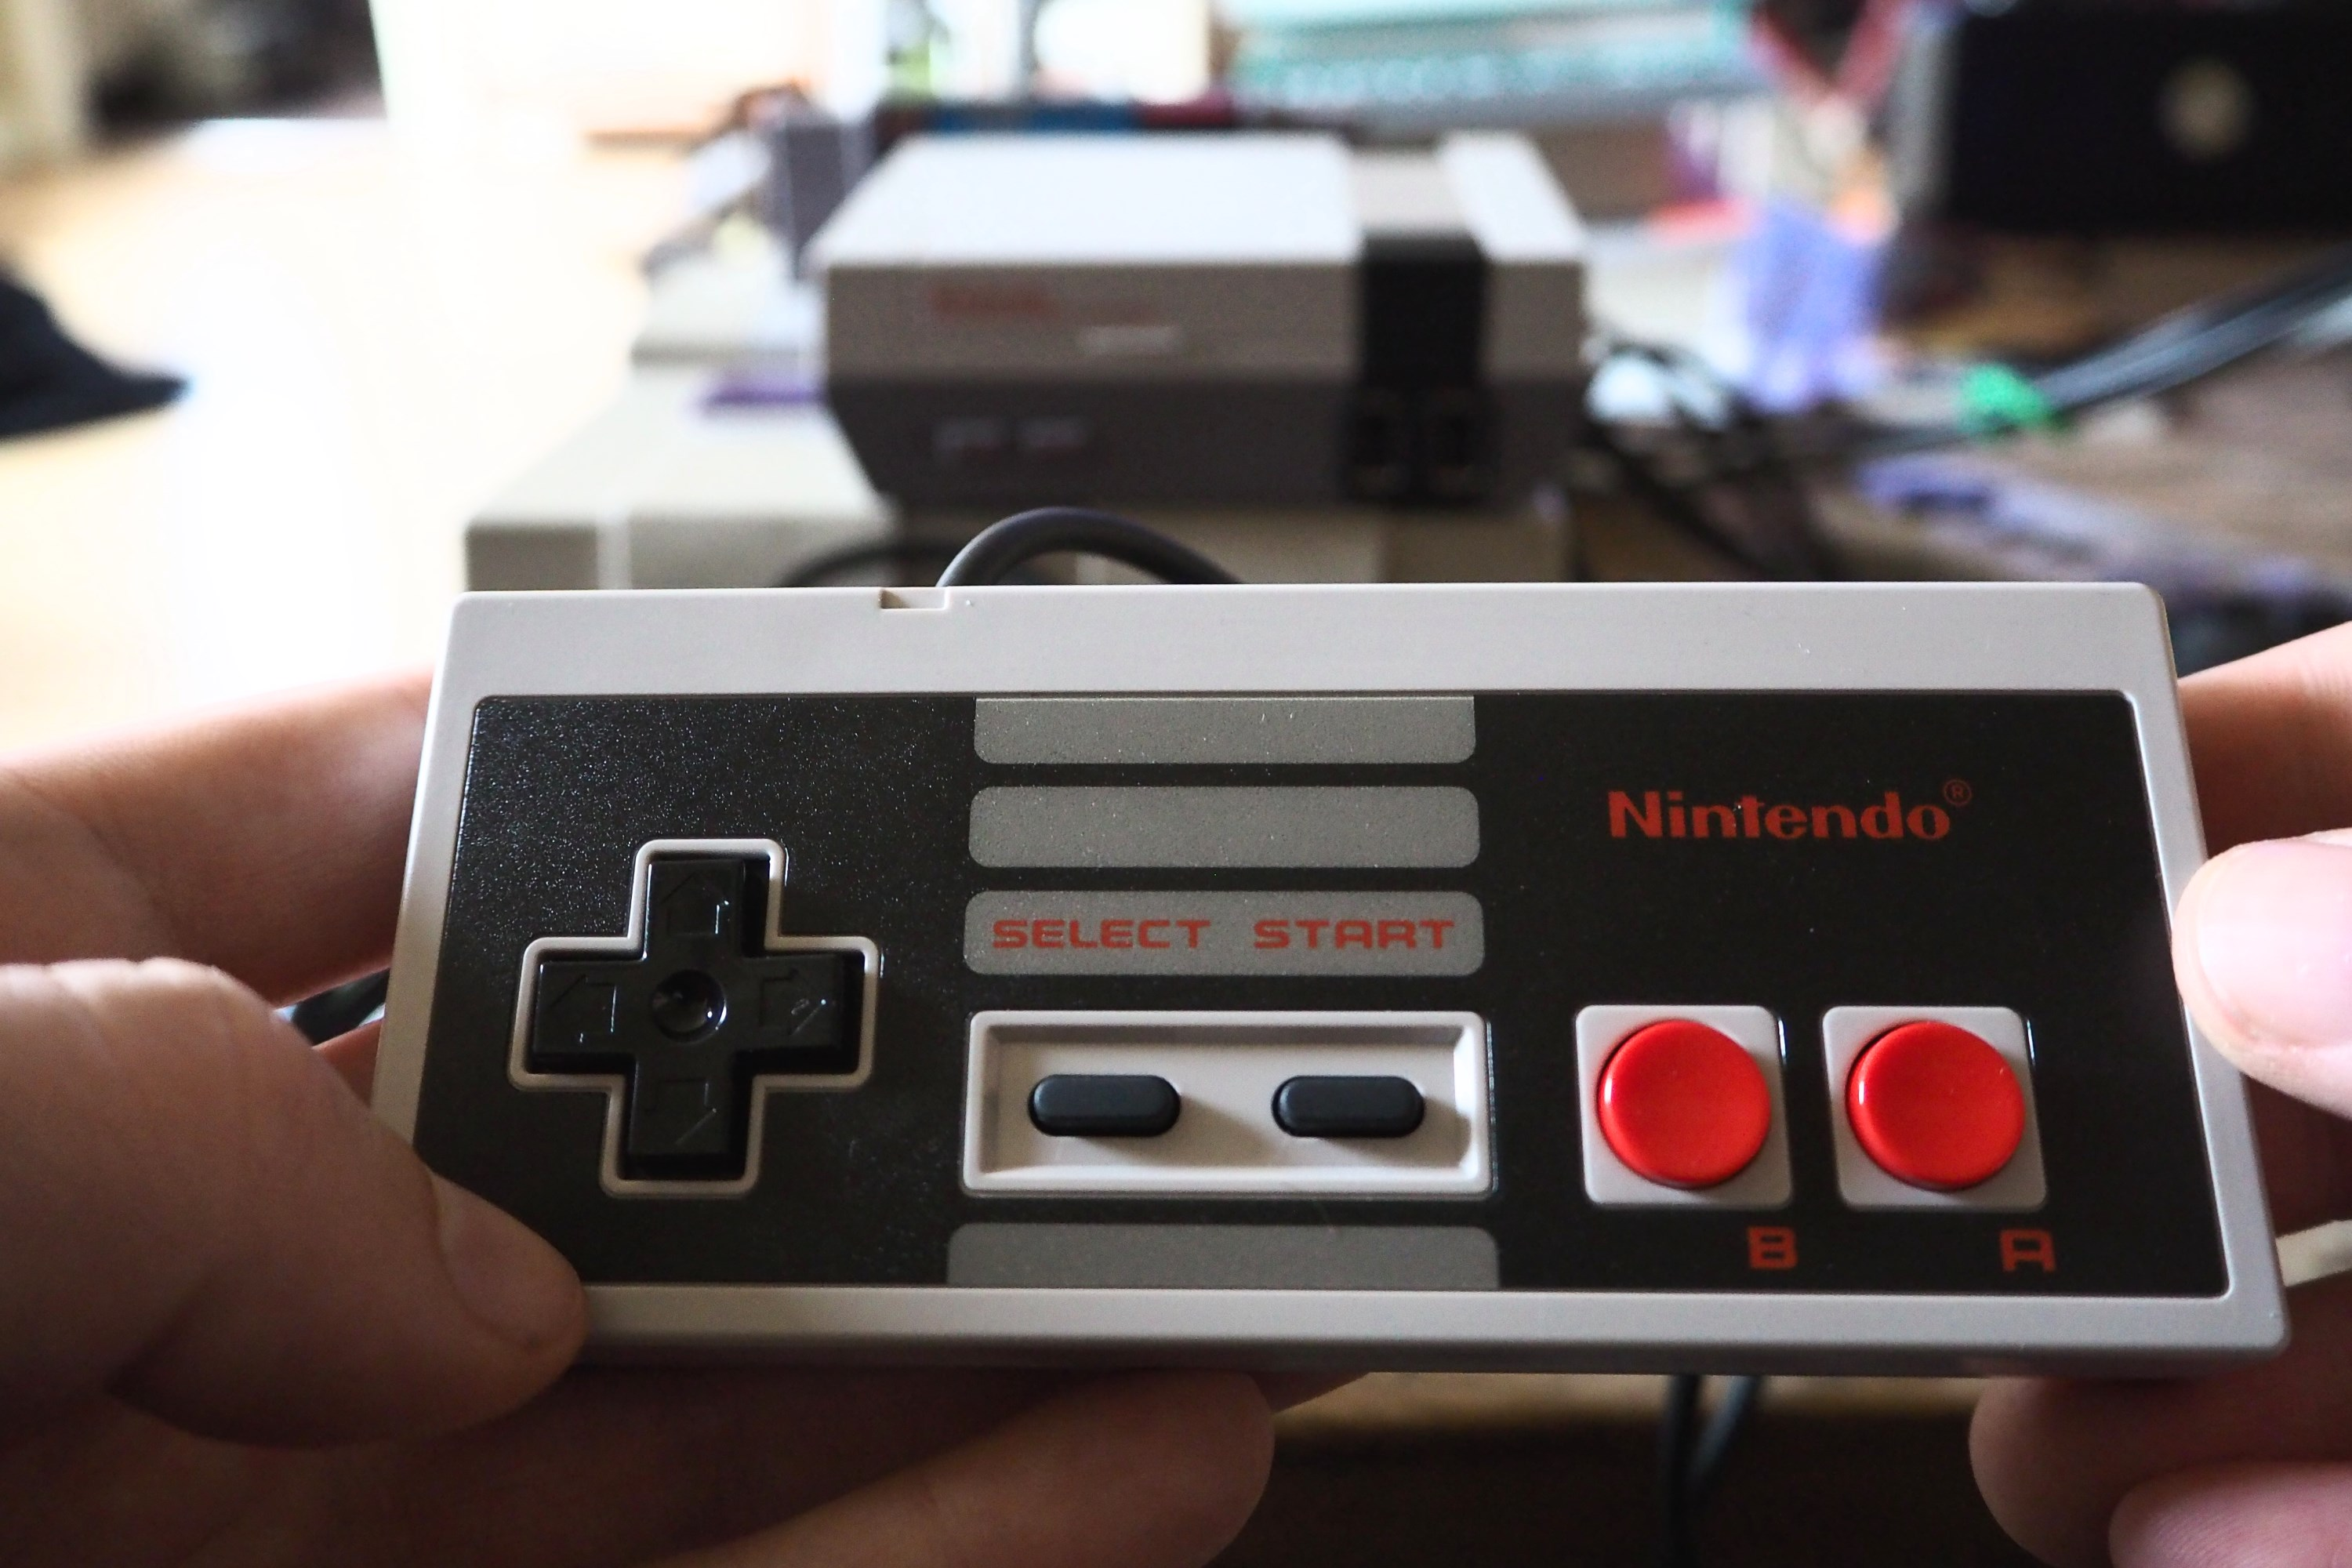 Review: The NES Classic Edition and all 30 games on it